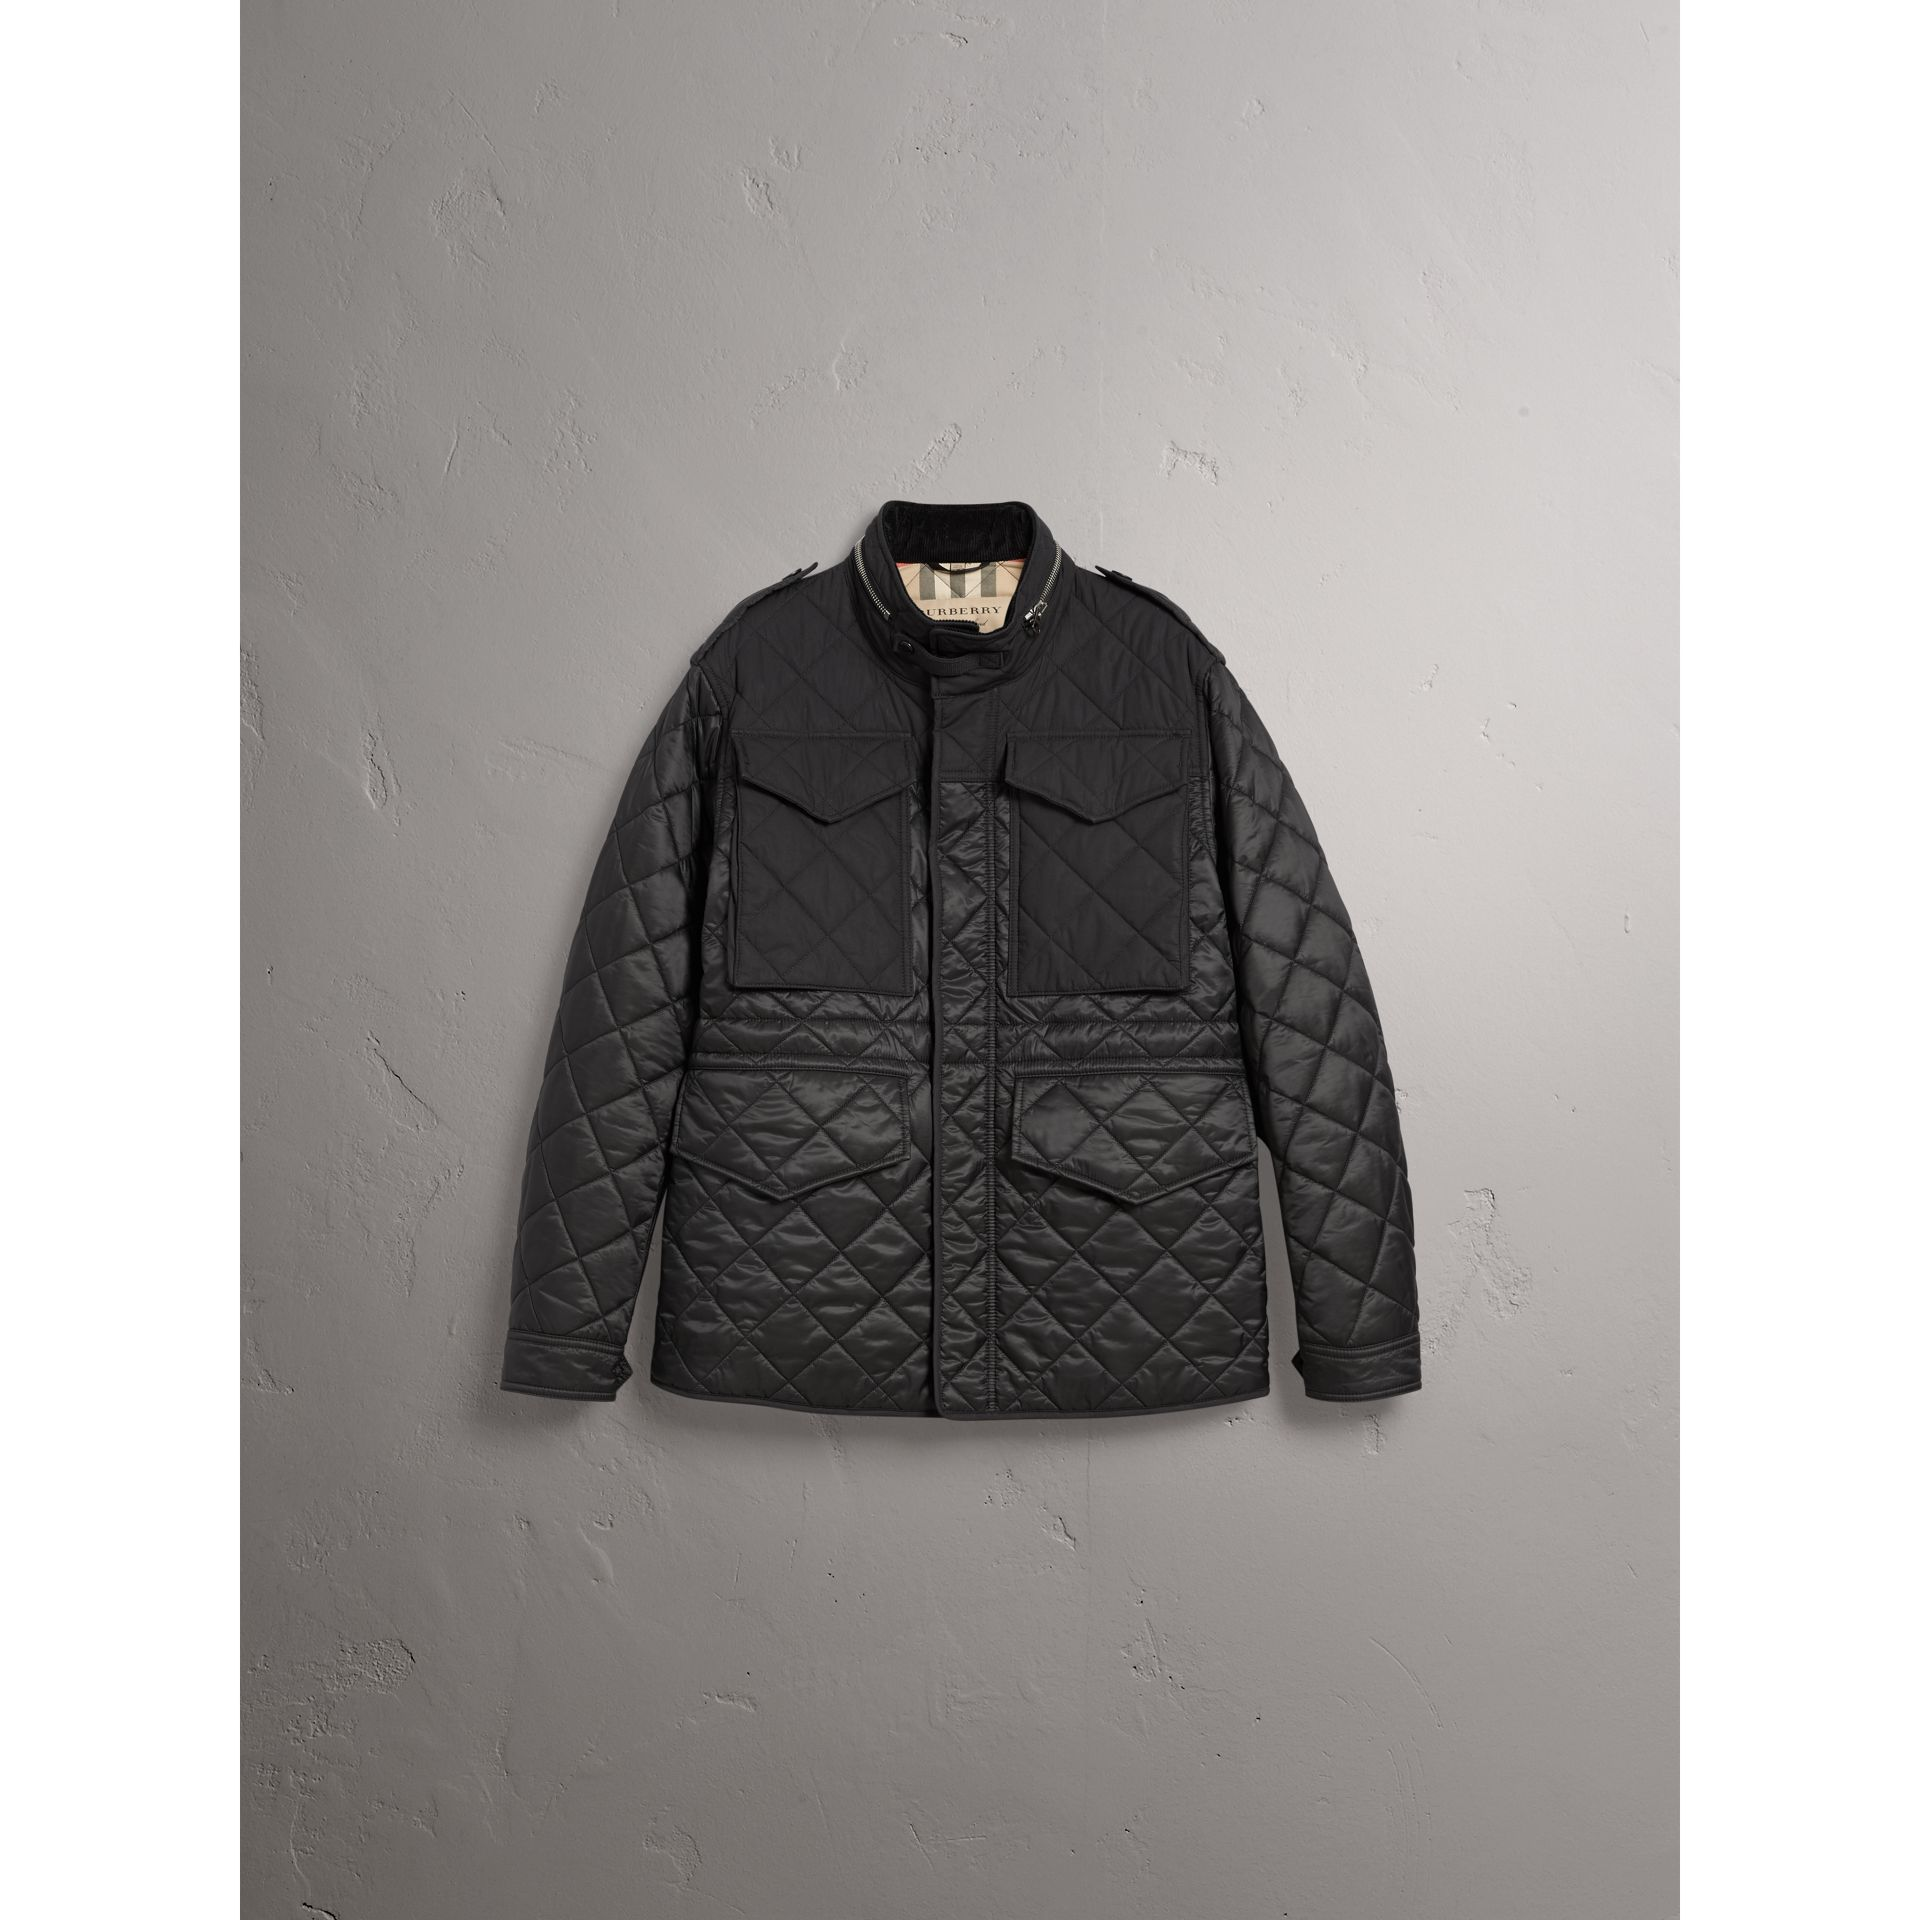 Packaway Hood Diamond Quilted Field Jacket in Black - Men | Burberry - gallery image 4